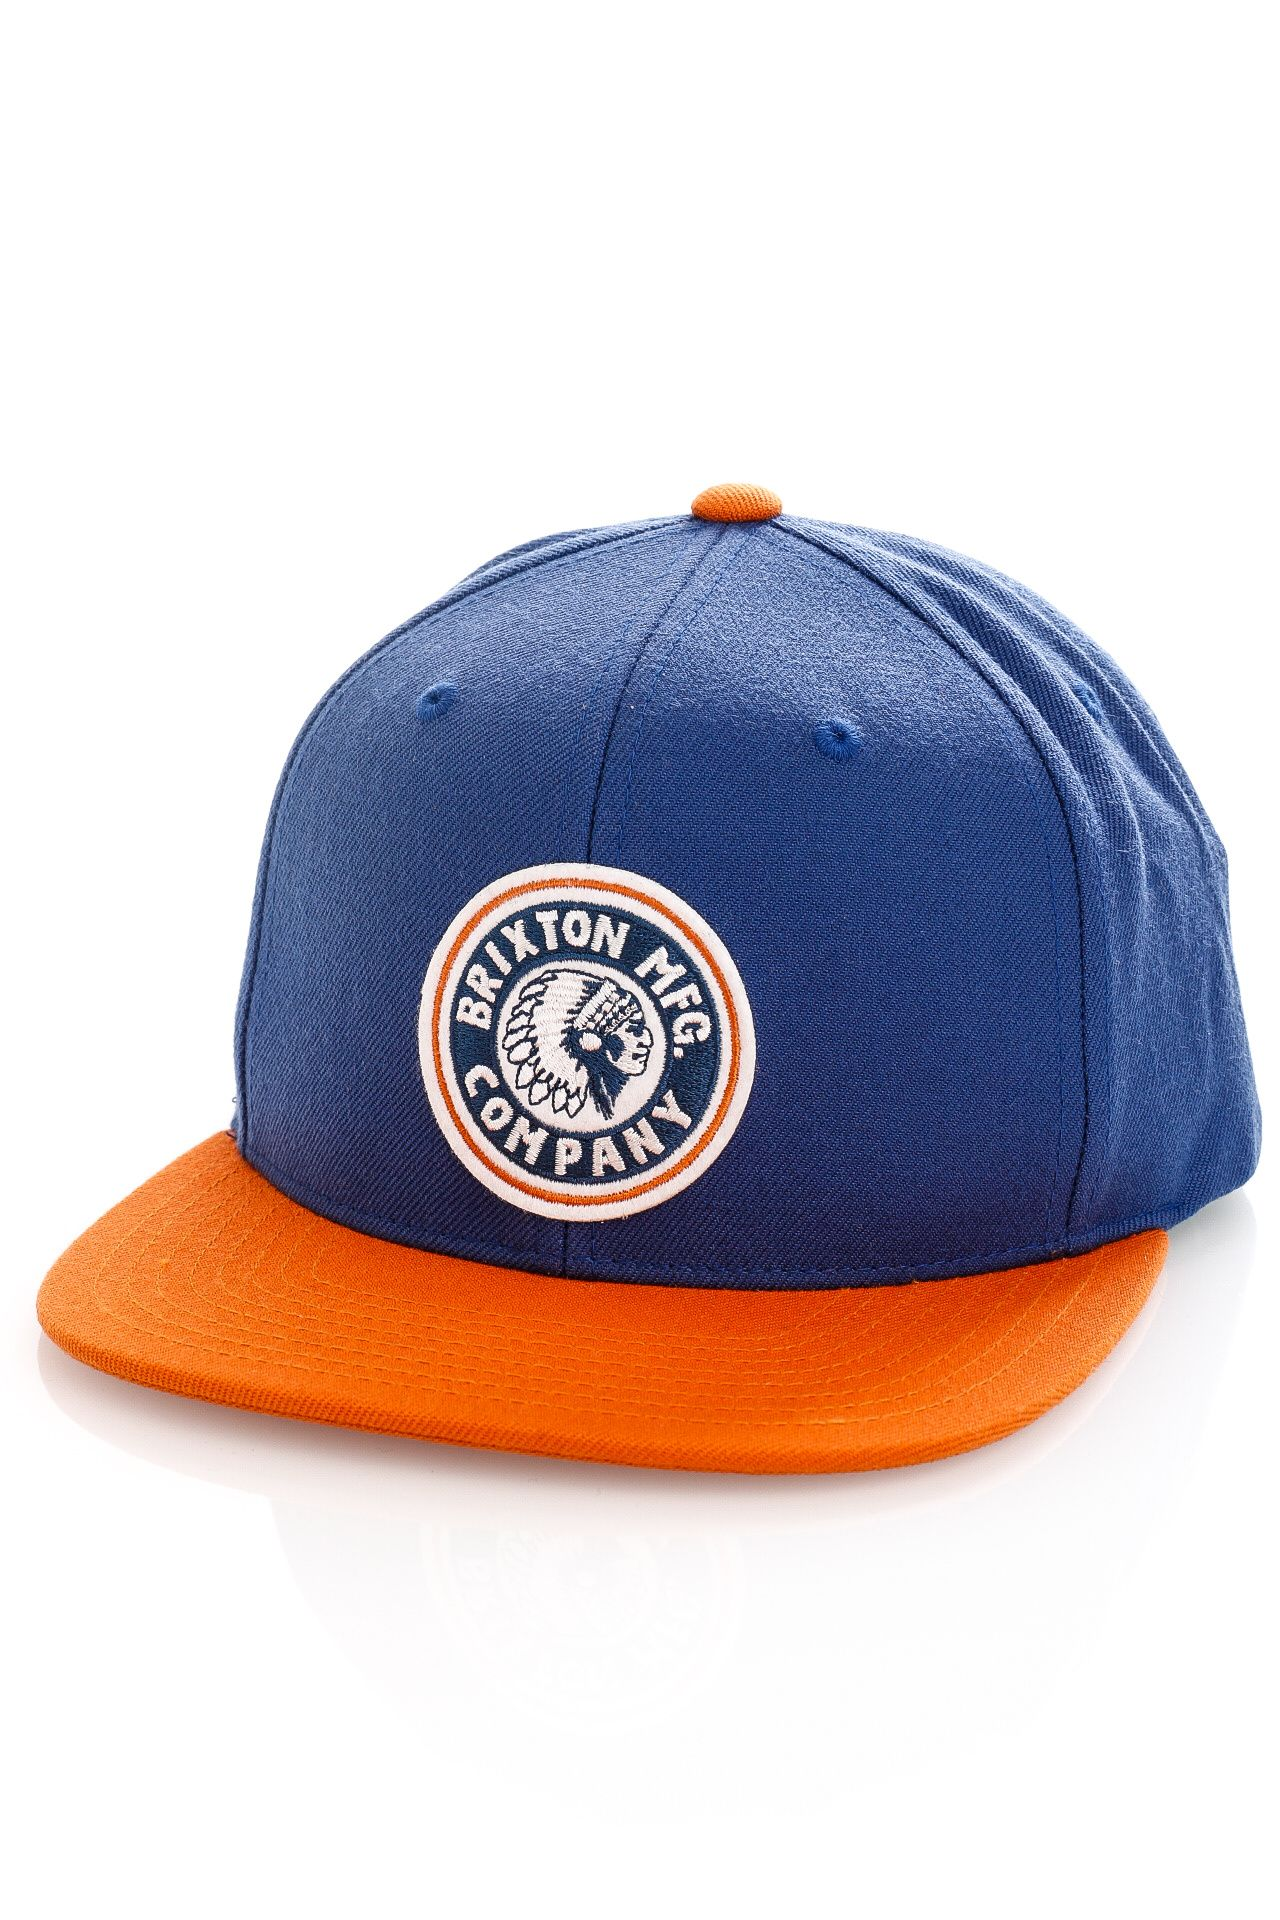 Afbeelding van Brixton Snapback Rival MP Snapback Joe Blue/Burnt Orange 10856